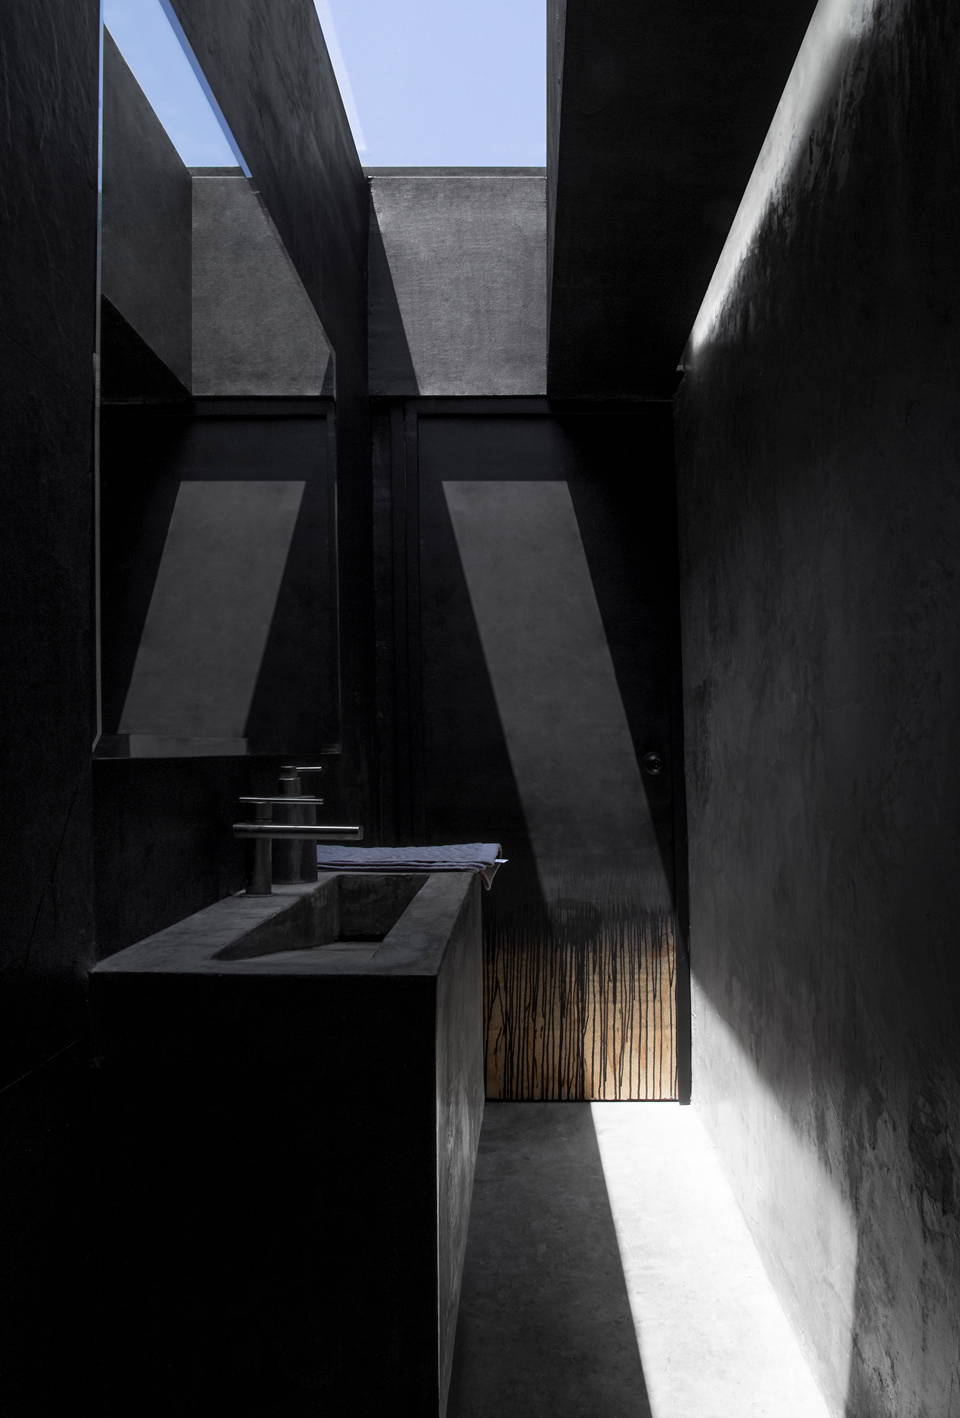 Architecture & Interior Design: 3508 by Sabbath Studio